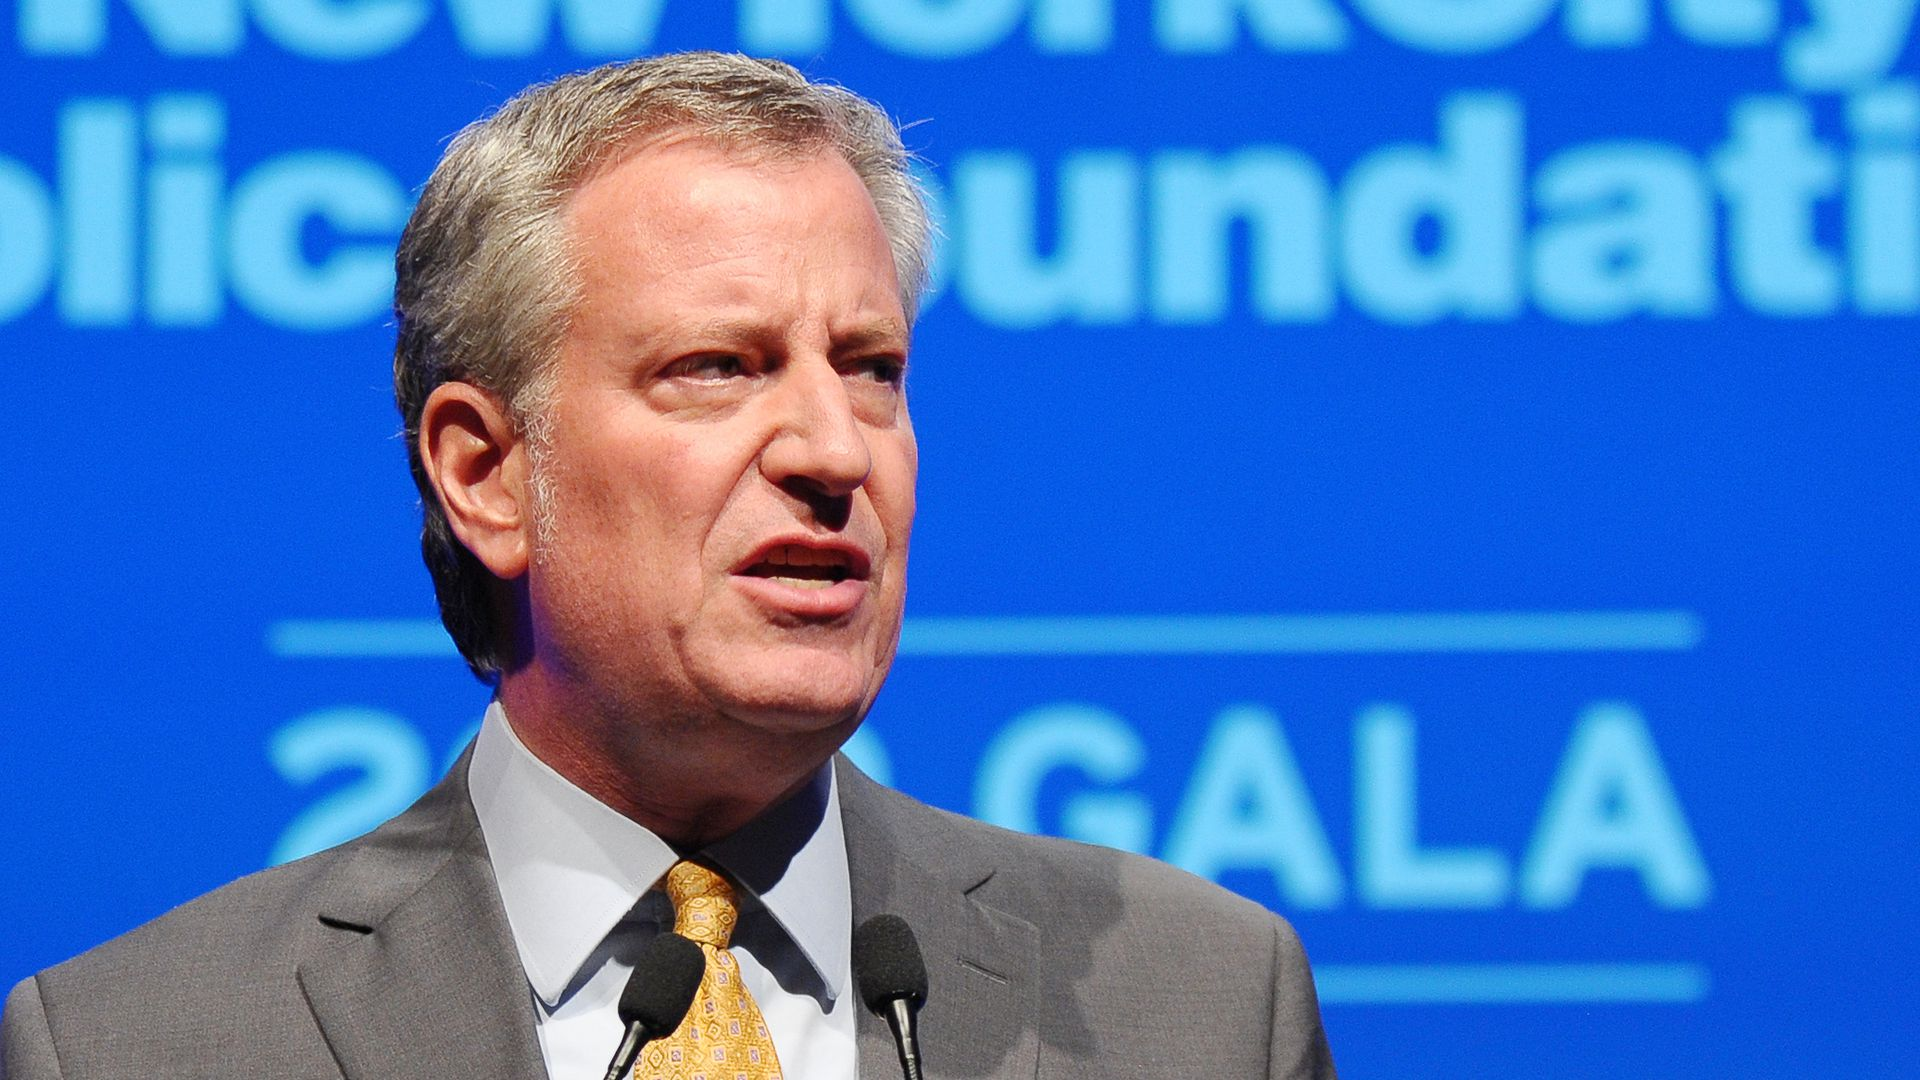 Bill de Blasio on the issues, in under 500 words